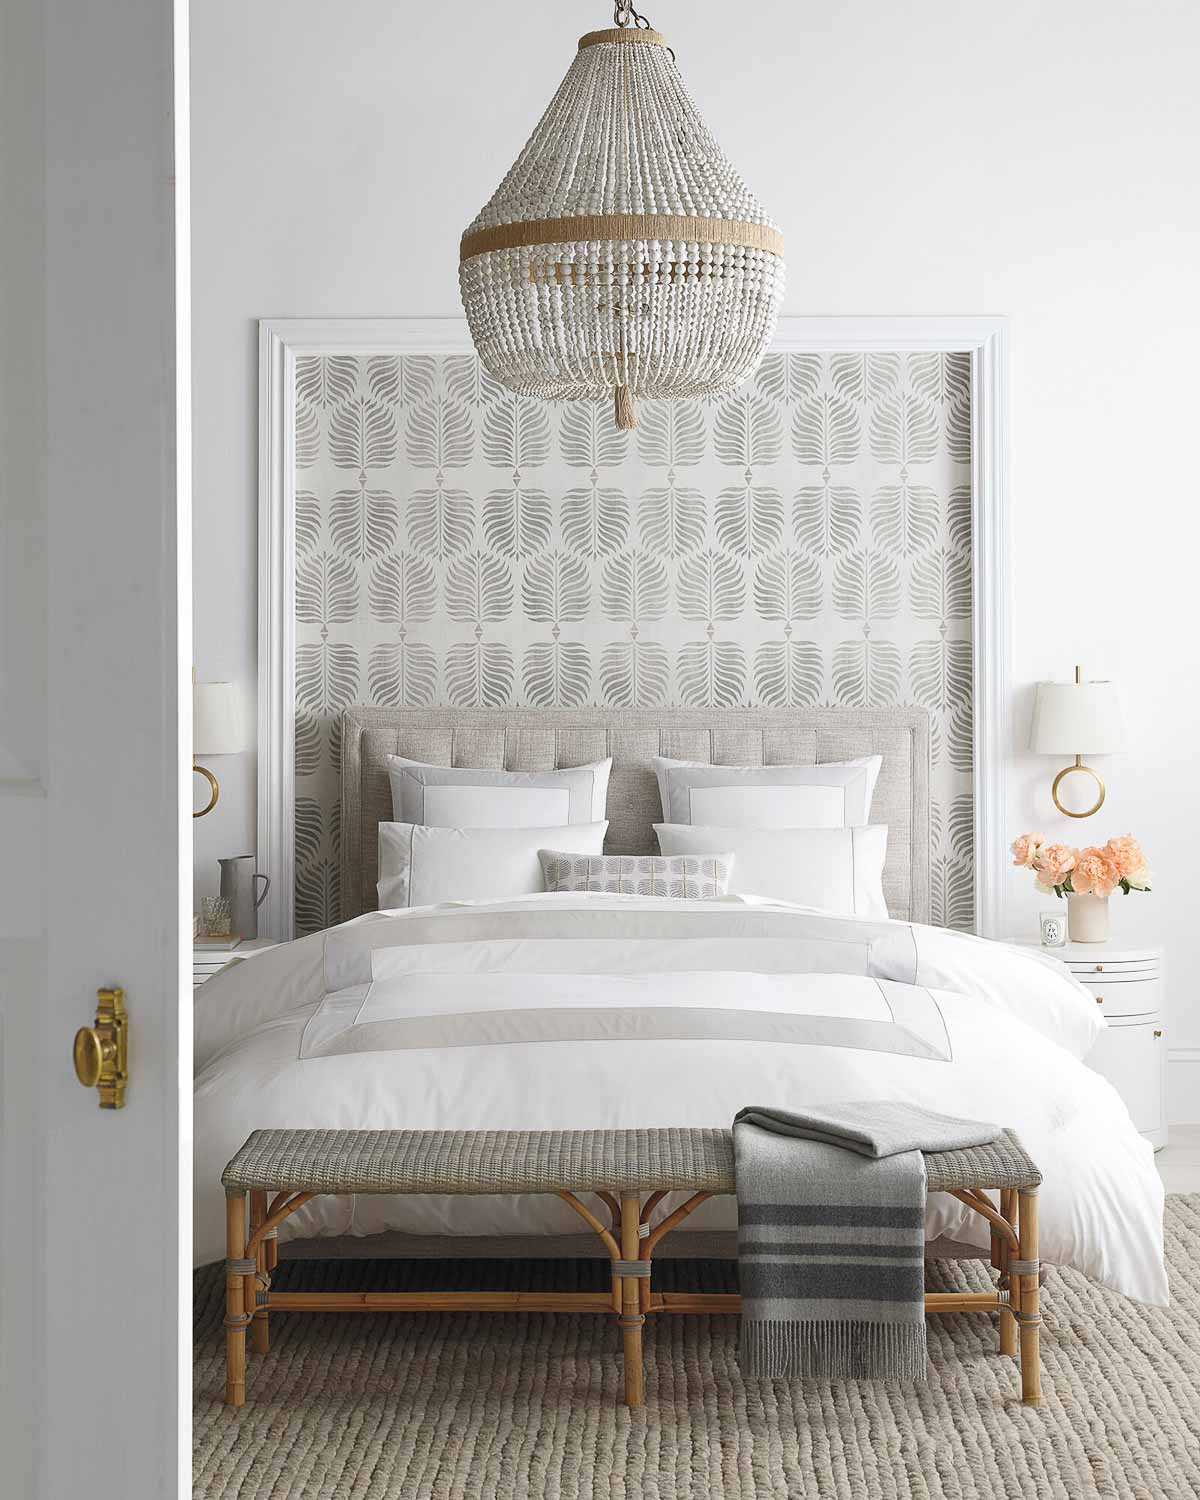 Love the idea of using wallpaper in a bedroom to frame the bed!